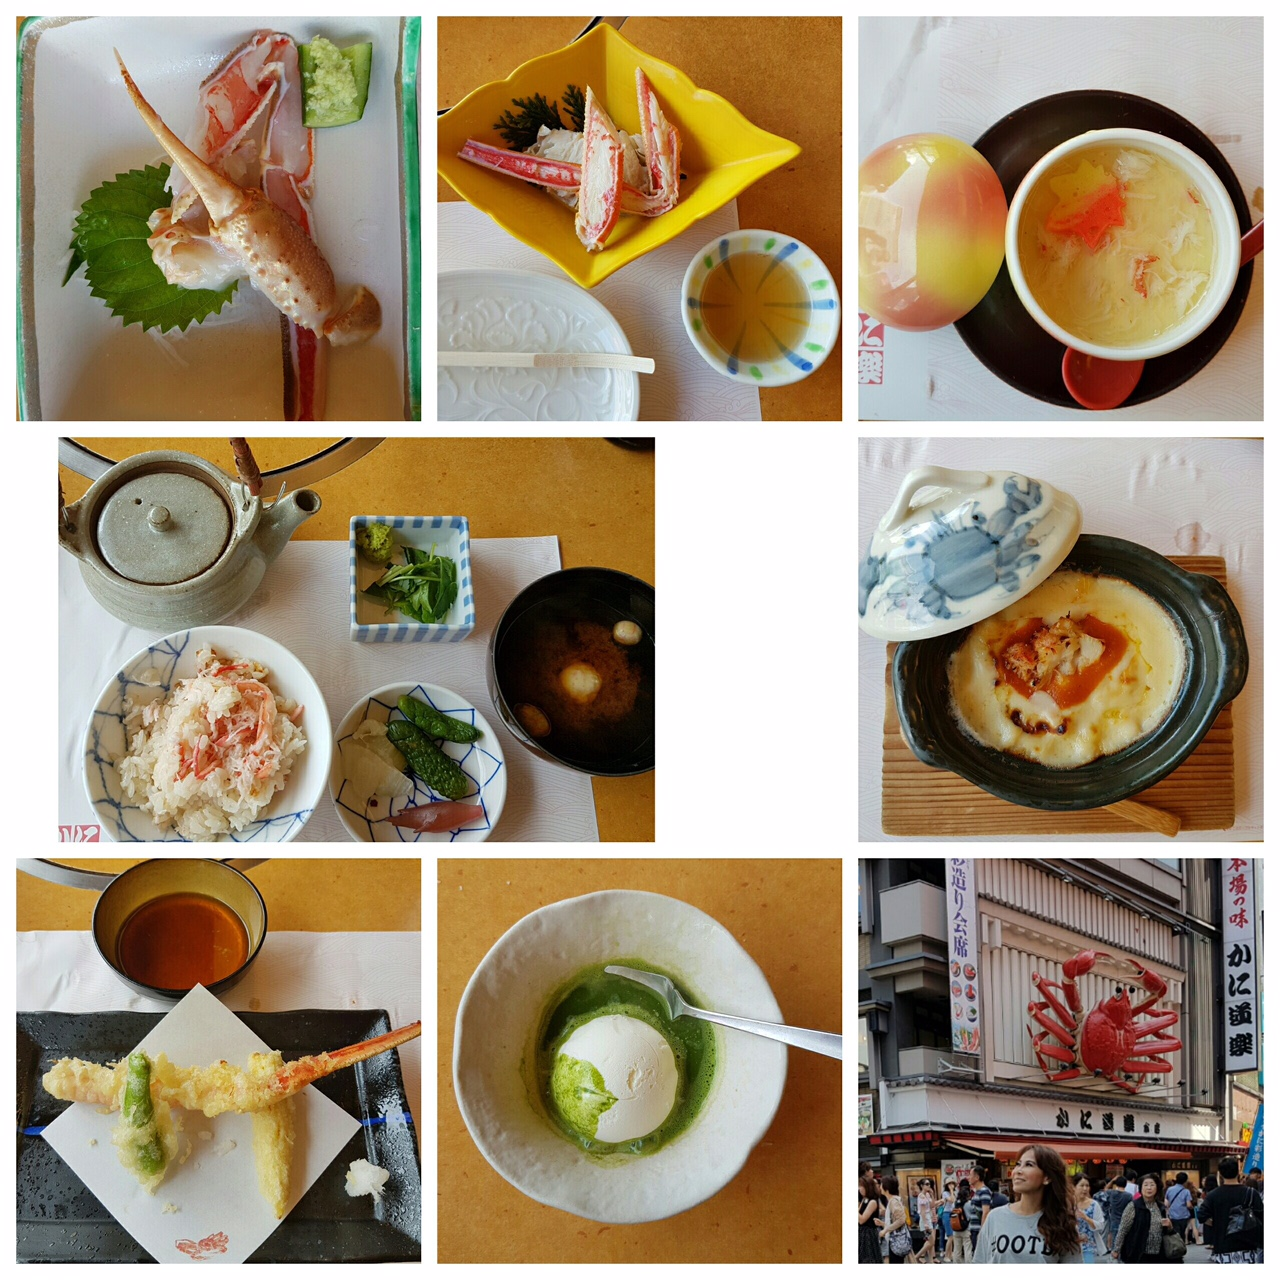 Cholesterol galore! Started with 6-course with so many style of cooking King Crab (boil, sashimi, chawan mushi, baked, cooked, with rice and tempura), ended with vanilla ice cream, poured with thick green tea. 1 set = ¥3880 = Rp540.400.